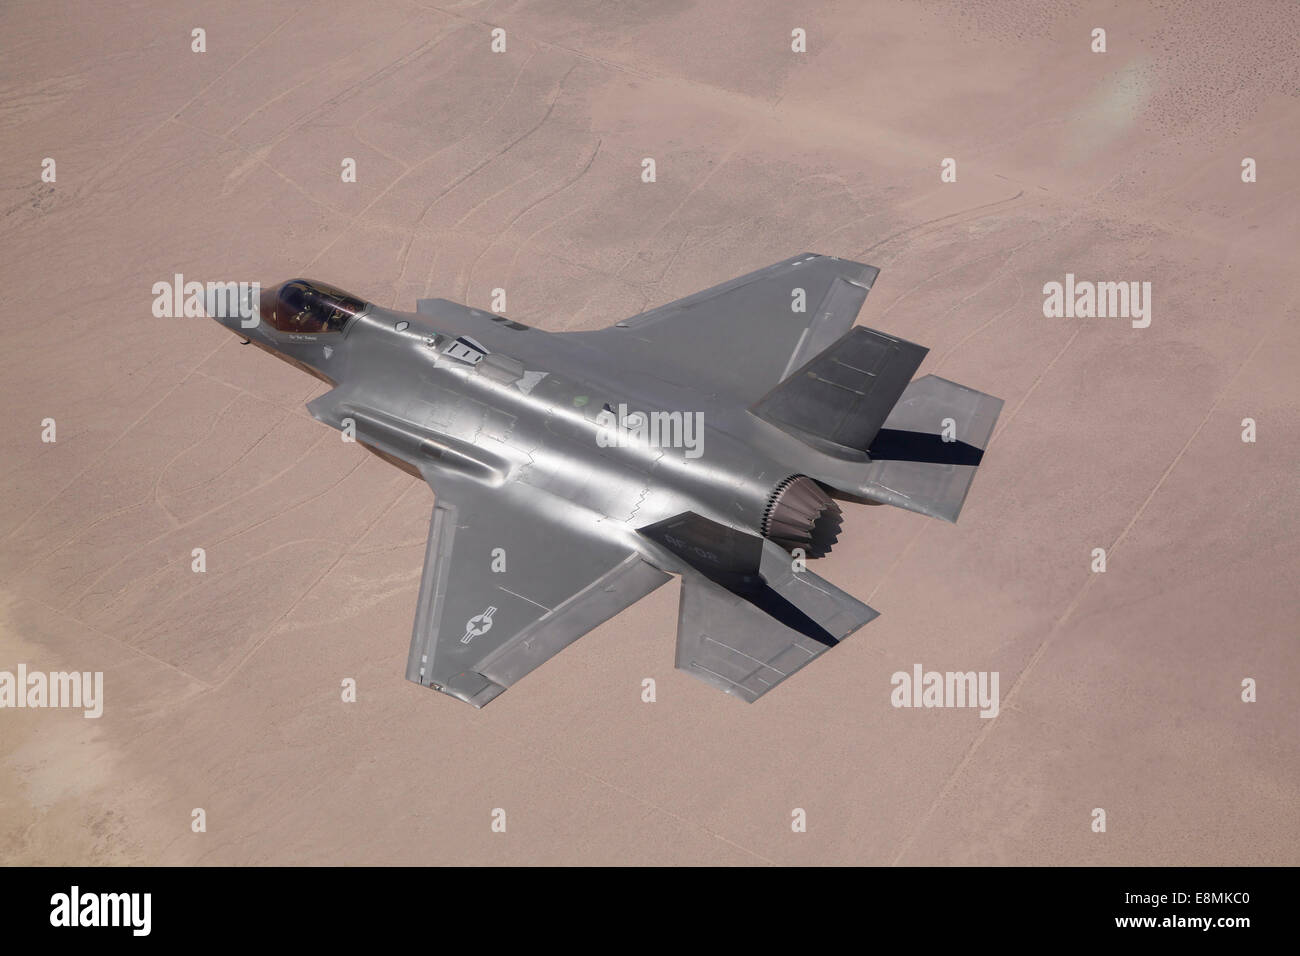 June 11, 2014 - An AF-2, the second production F-35 Lightning II of the U.S. Air Force, flies over Edwards Air Force Stock Photo